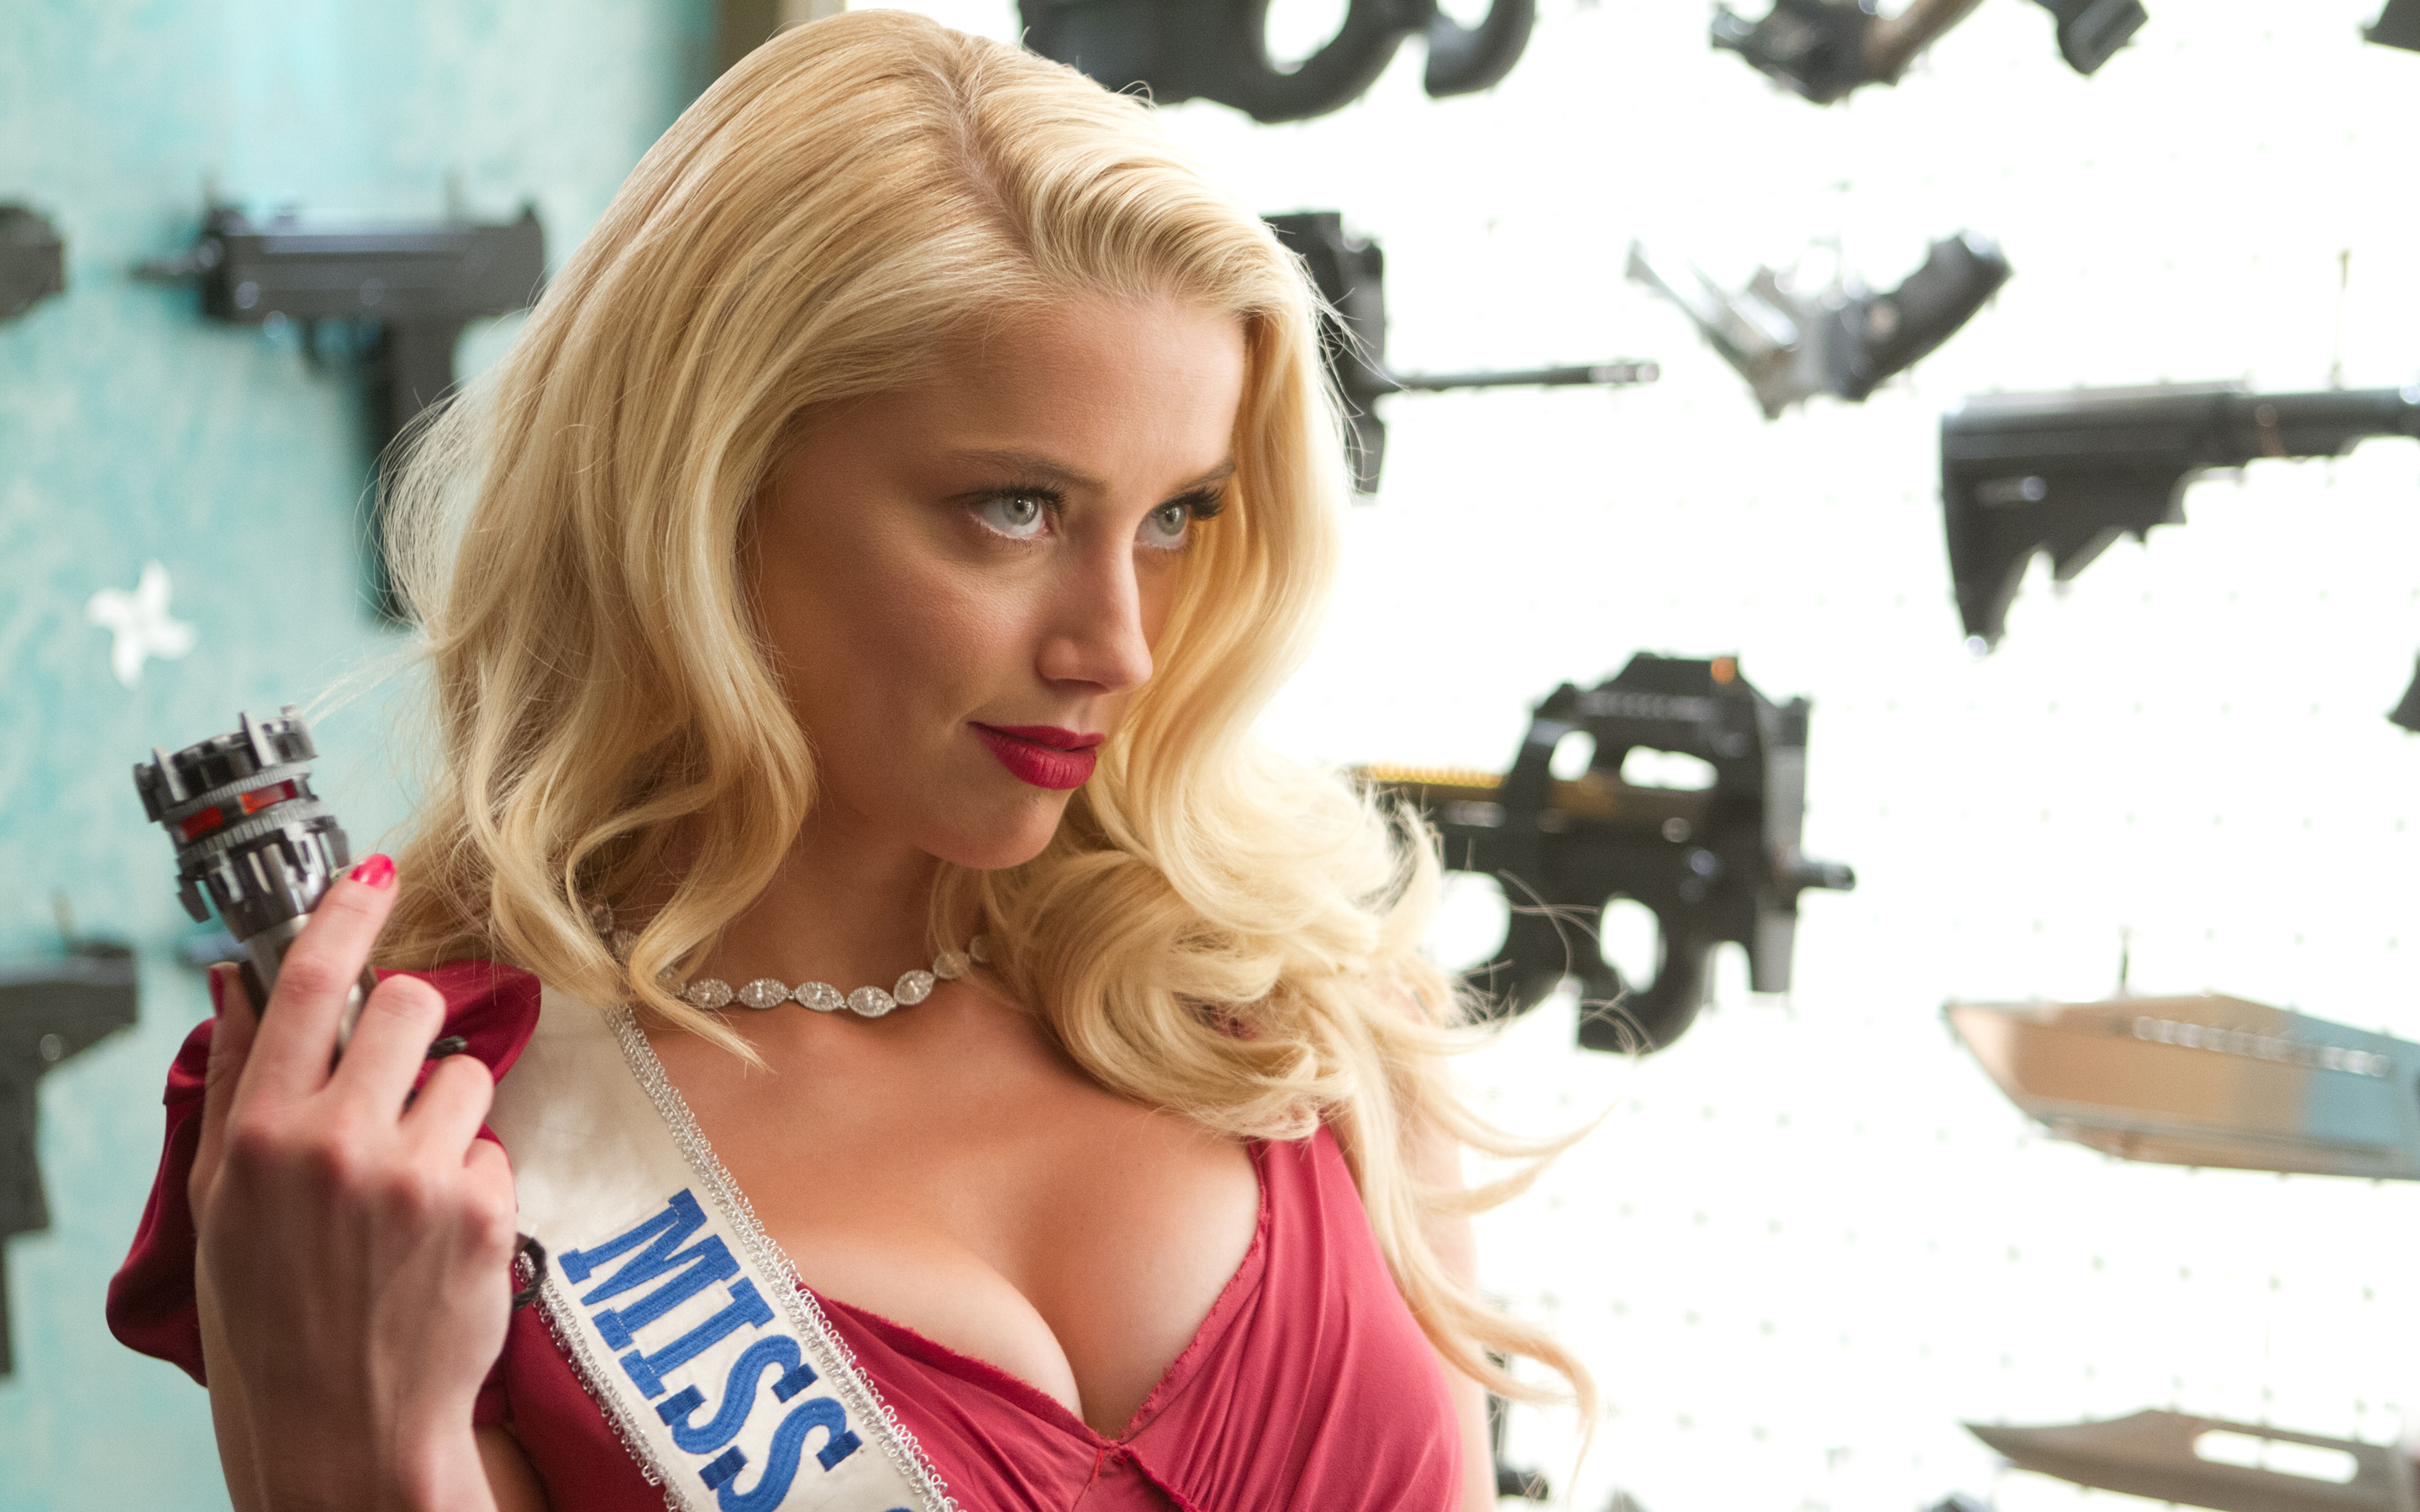 Amber Heard in Machete Kills 272.52 Kb